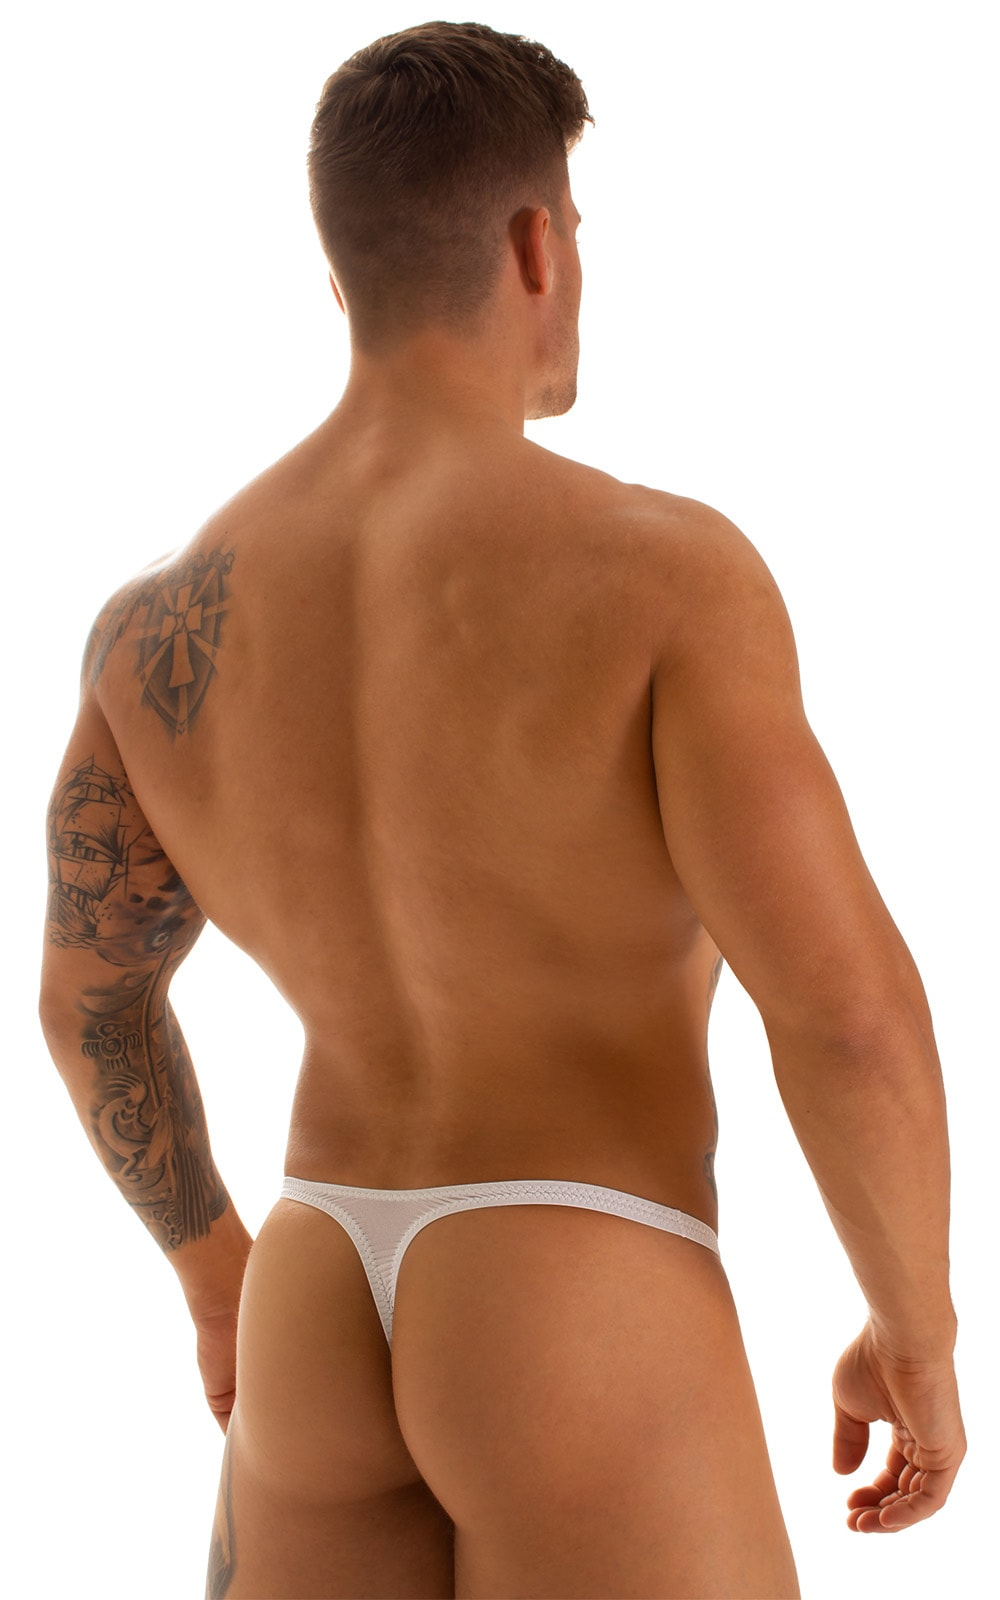 Quick Release Thong - Bravura Pouch in Super ThinSKINZ White 2